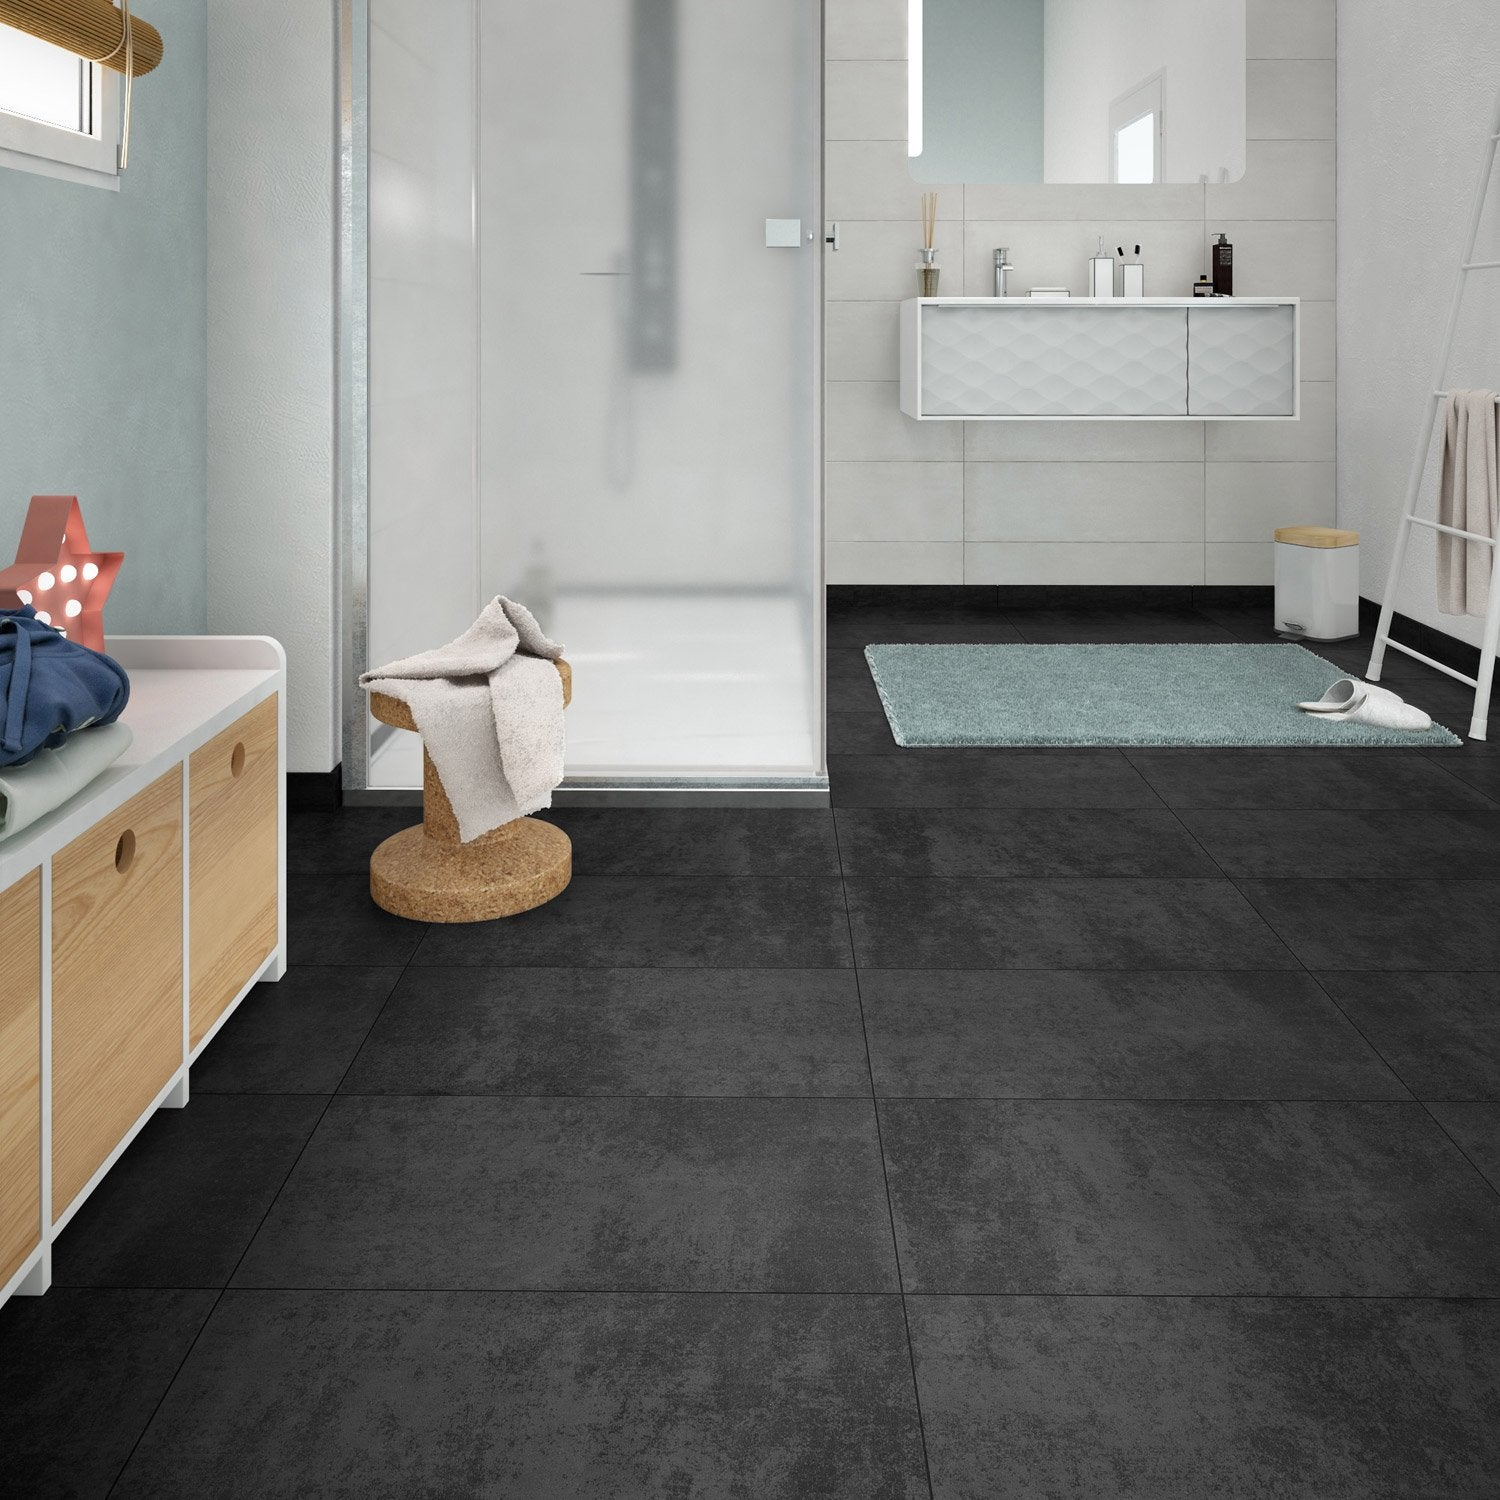 Carrelage imitation beton cire leroy merlin from leroy for Carrelage sol noir